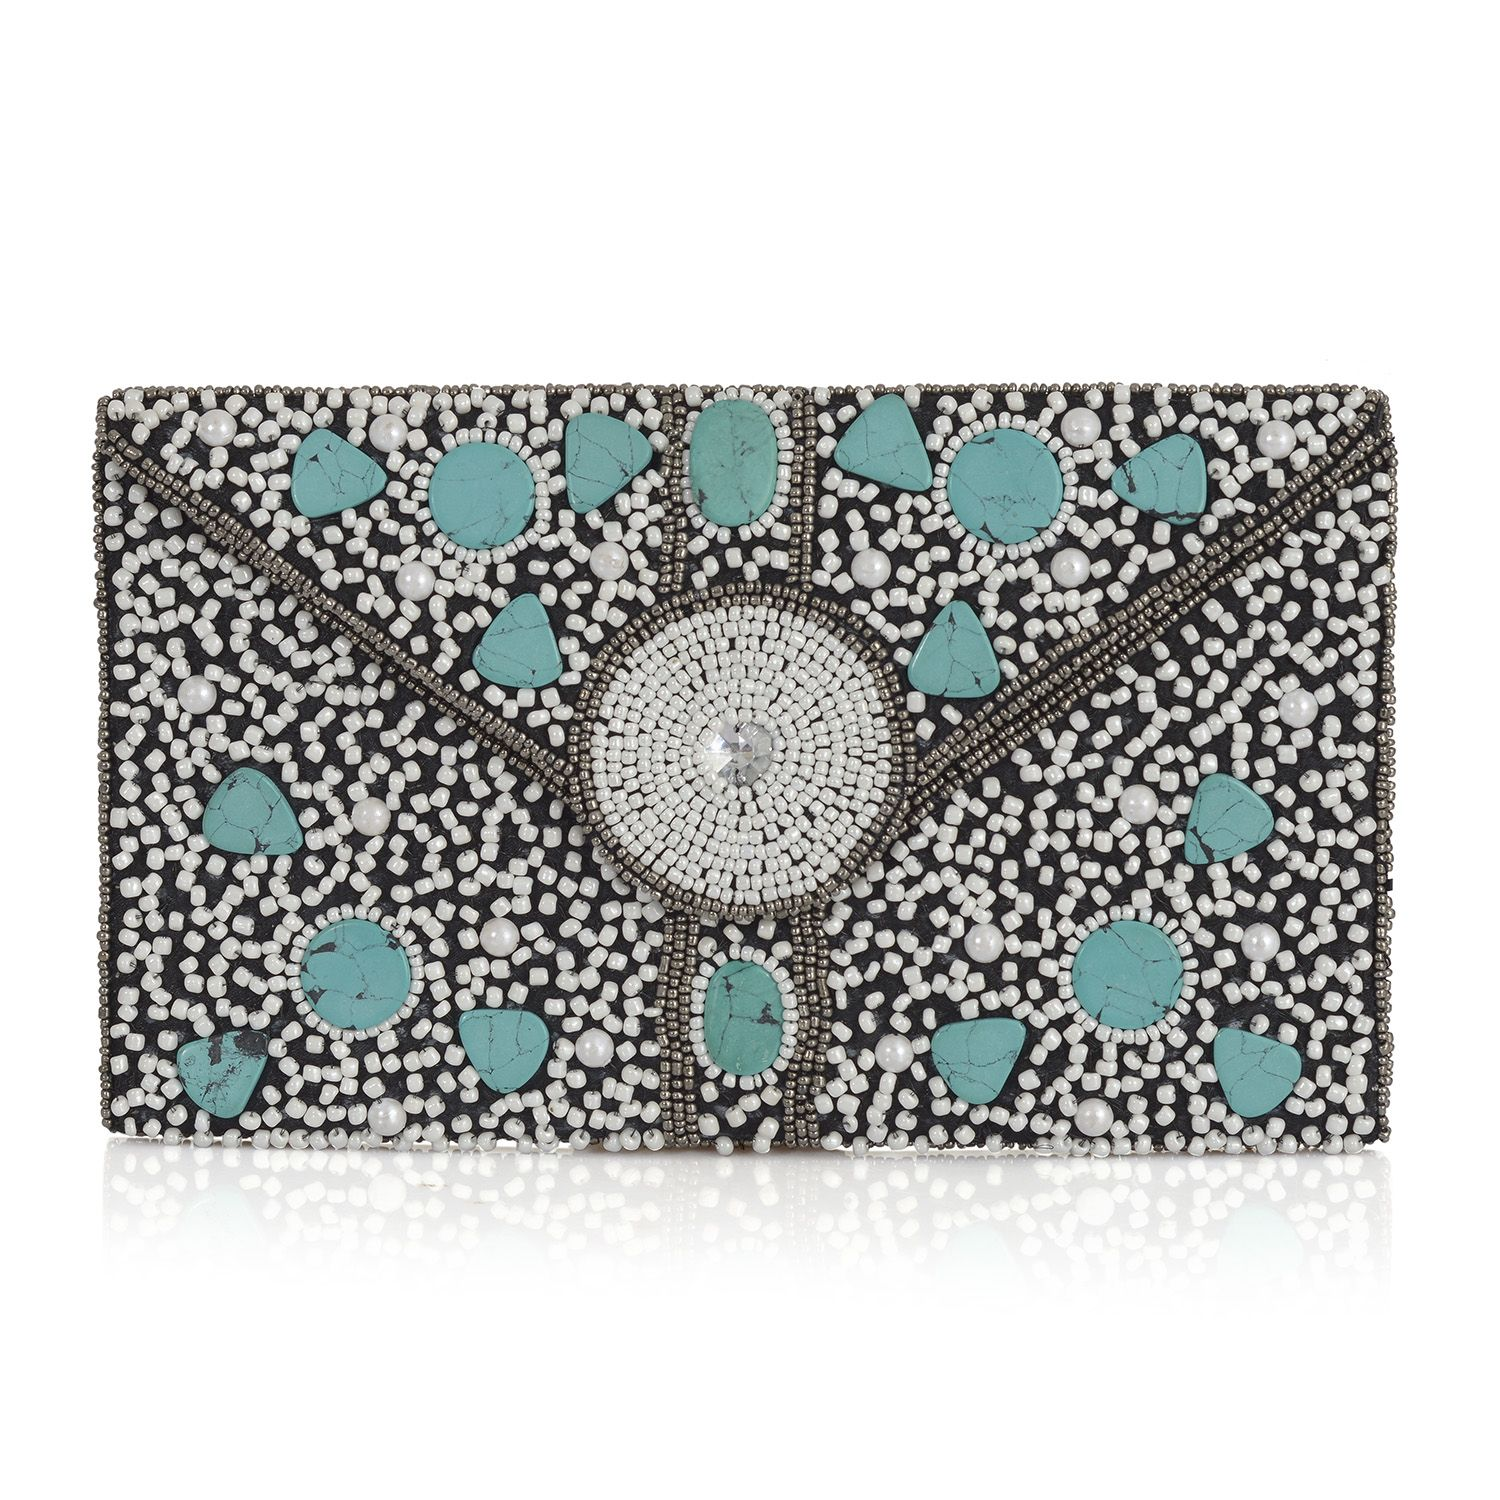 Blue Howlite Envelope Clutch (11x6 in)